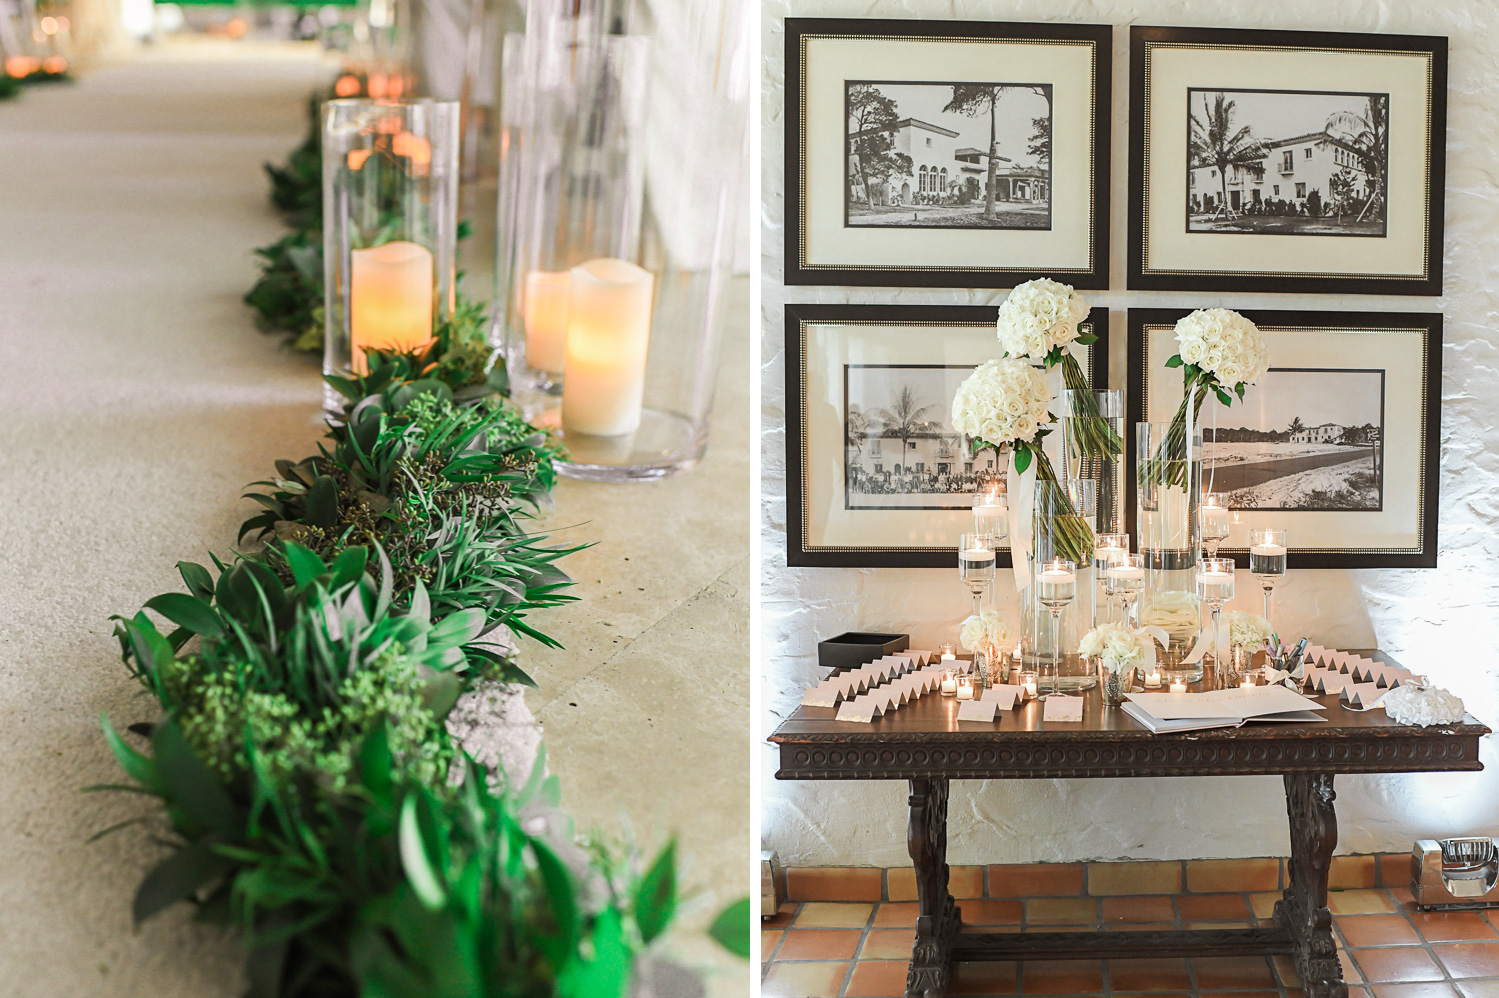 Wedding ceremony décor pictures at The Addison Boca Raton